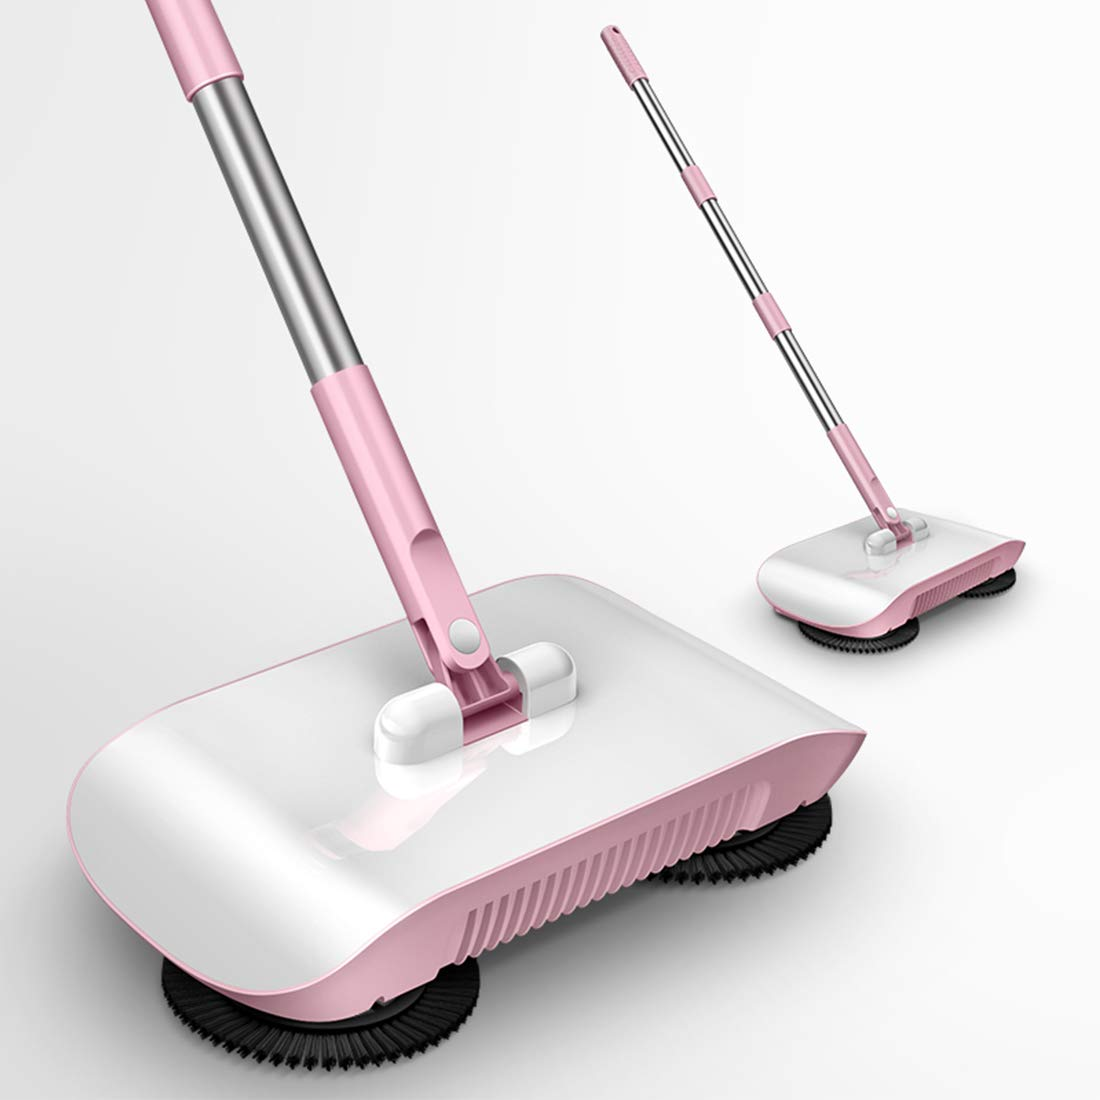 Rayzi Household Cleaning 360 Hand Push Automatic Sweeper Broom - Including Broom & Dustpan & Trash Bin - Non Electric for Tile,Marble, and Hardwood, 2 x Cloth (Pink) by Rayzi